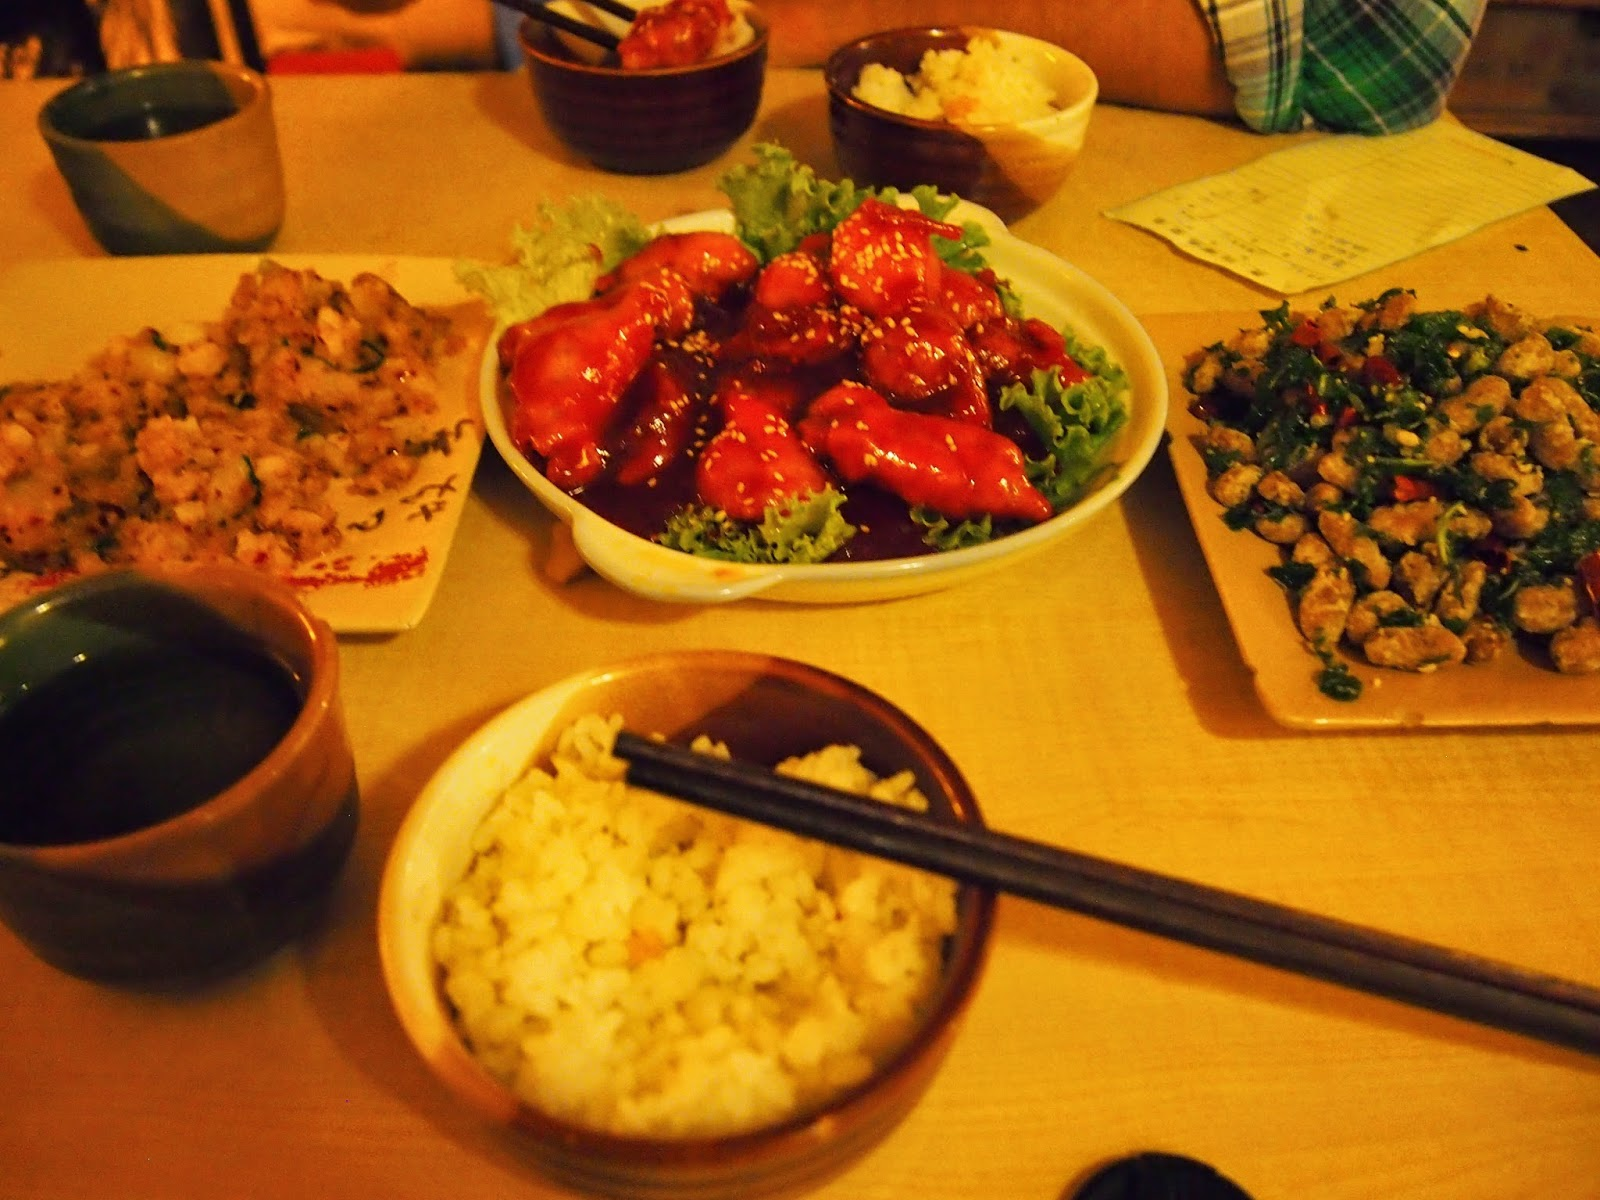 a meal for two in Yunnan province